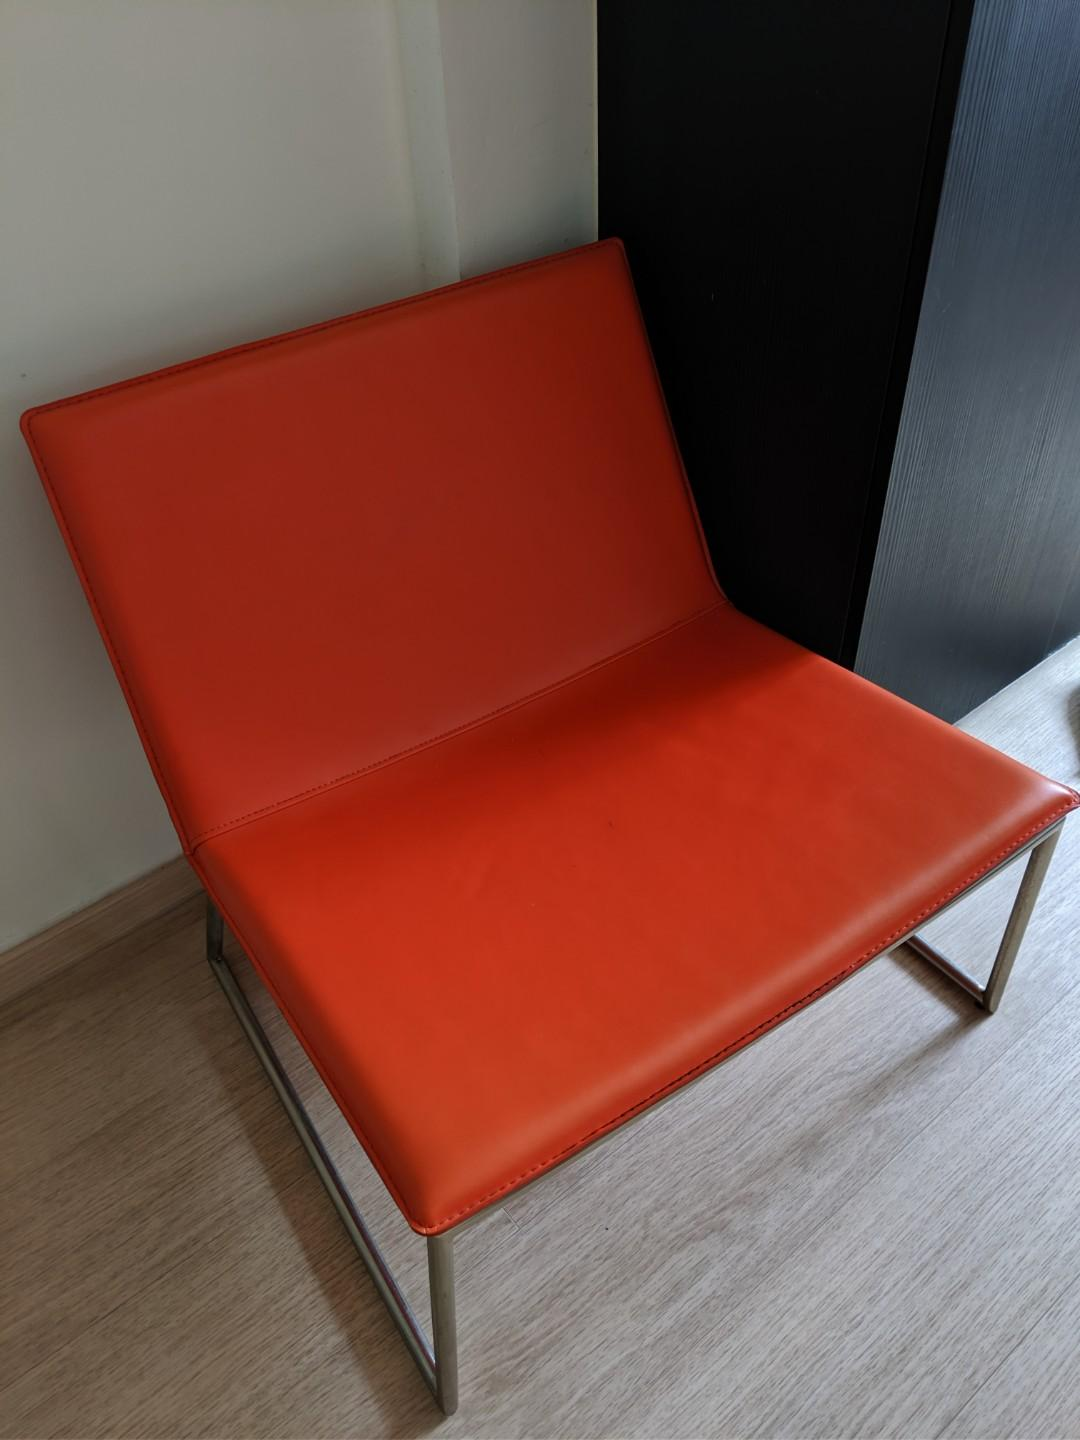 Picture of: Crate Barrel Red Orange Sofa Furniture Sofas On Carousell